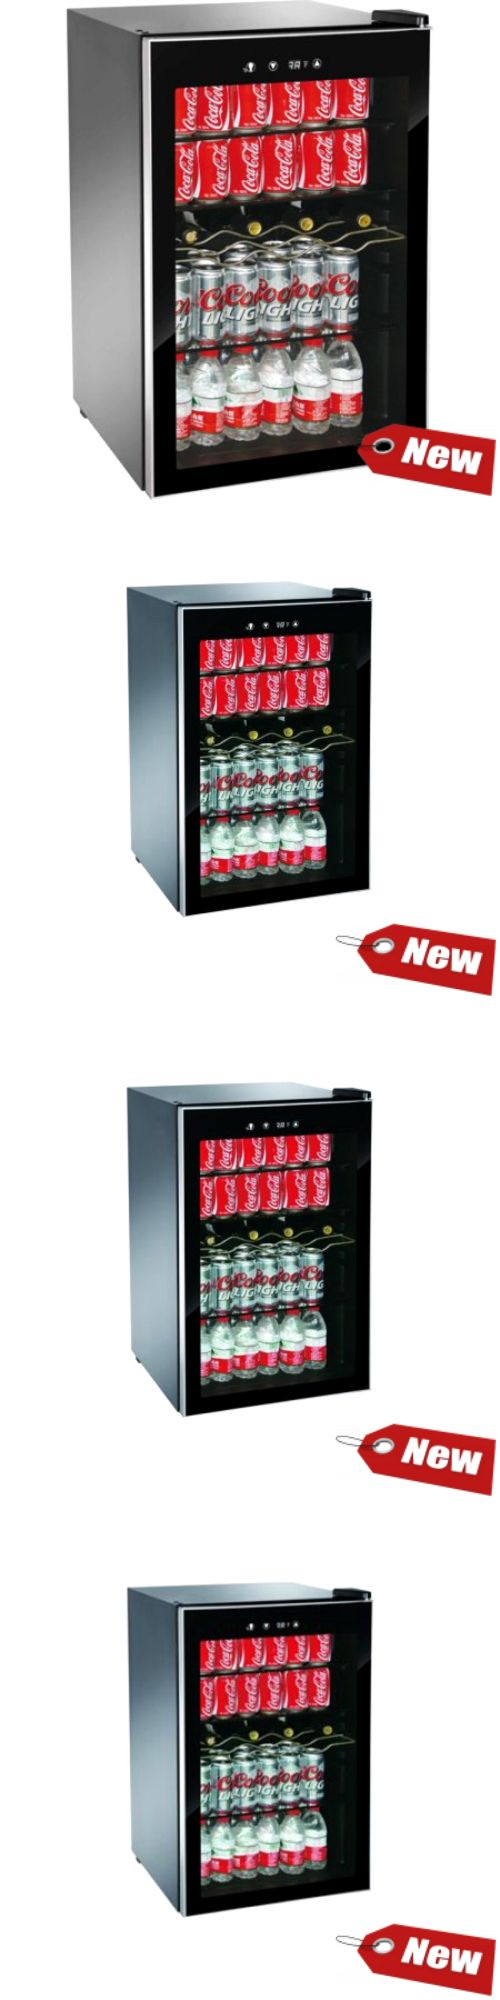 Mini Fridges 71262: Mini Beverage Refrigerator Wine Cooler Chiller Small Fridge 150 Can Soda Beer -> BUY IT NOW ONLY: $190.21 on eBay! http://www.winecoolerhub.com/whynter-wine-coolers-for-sale/